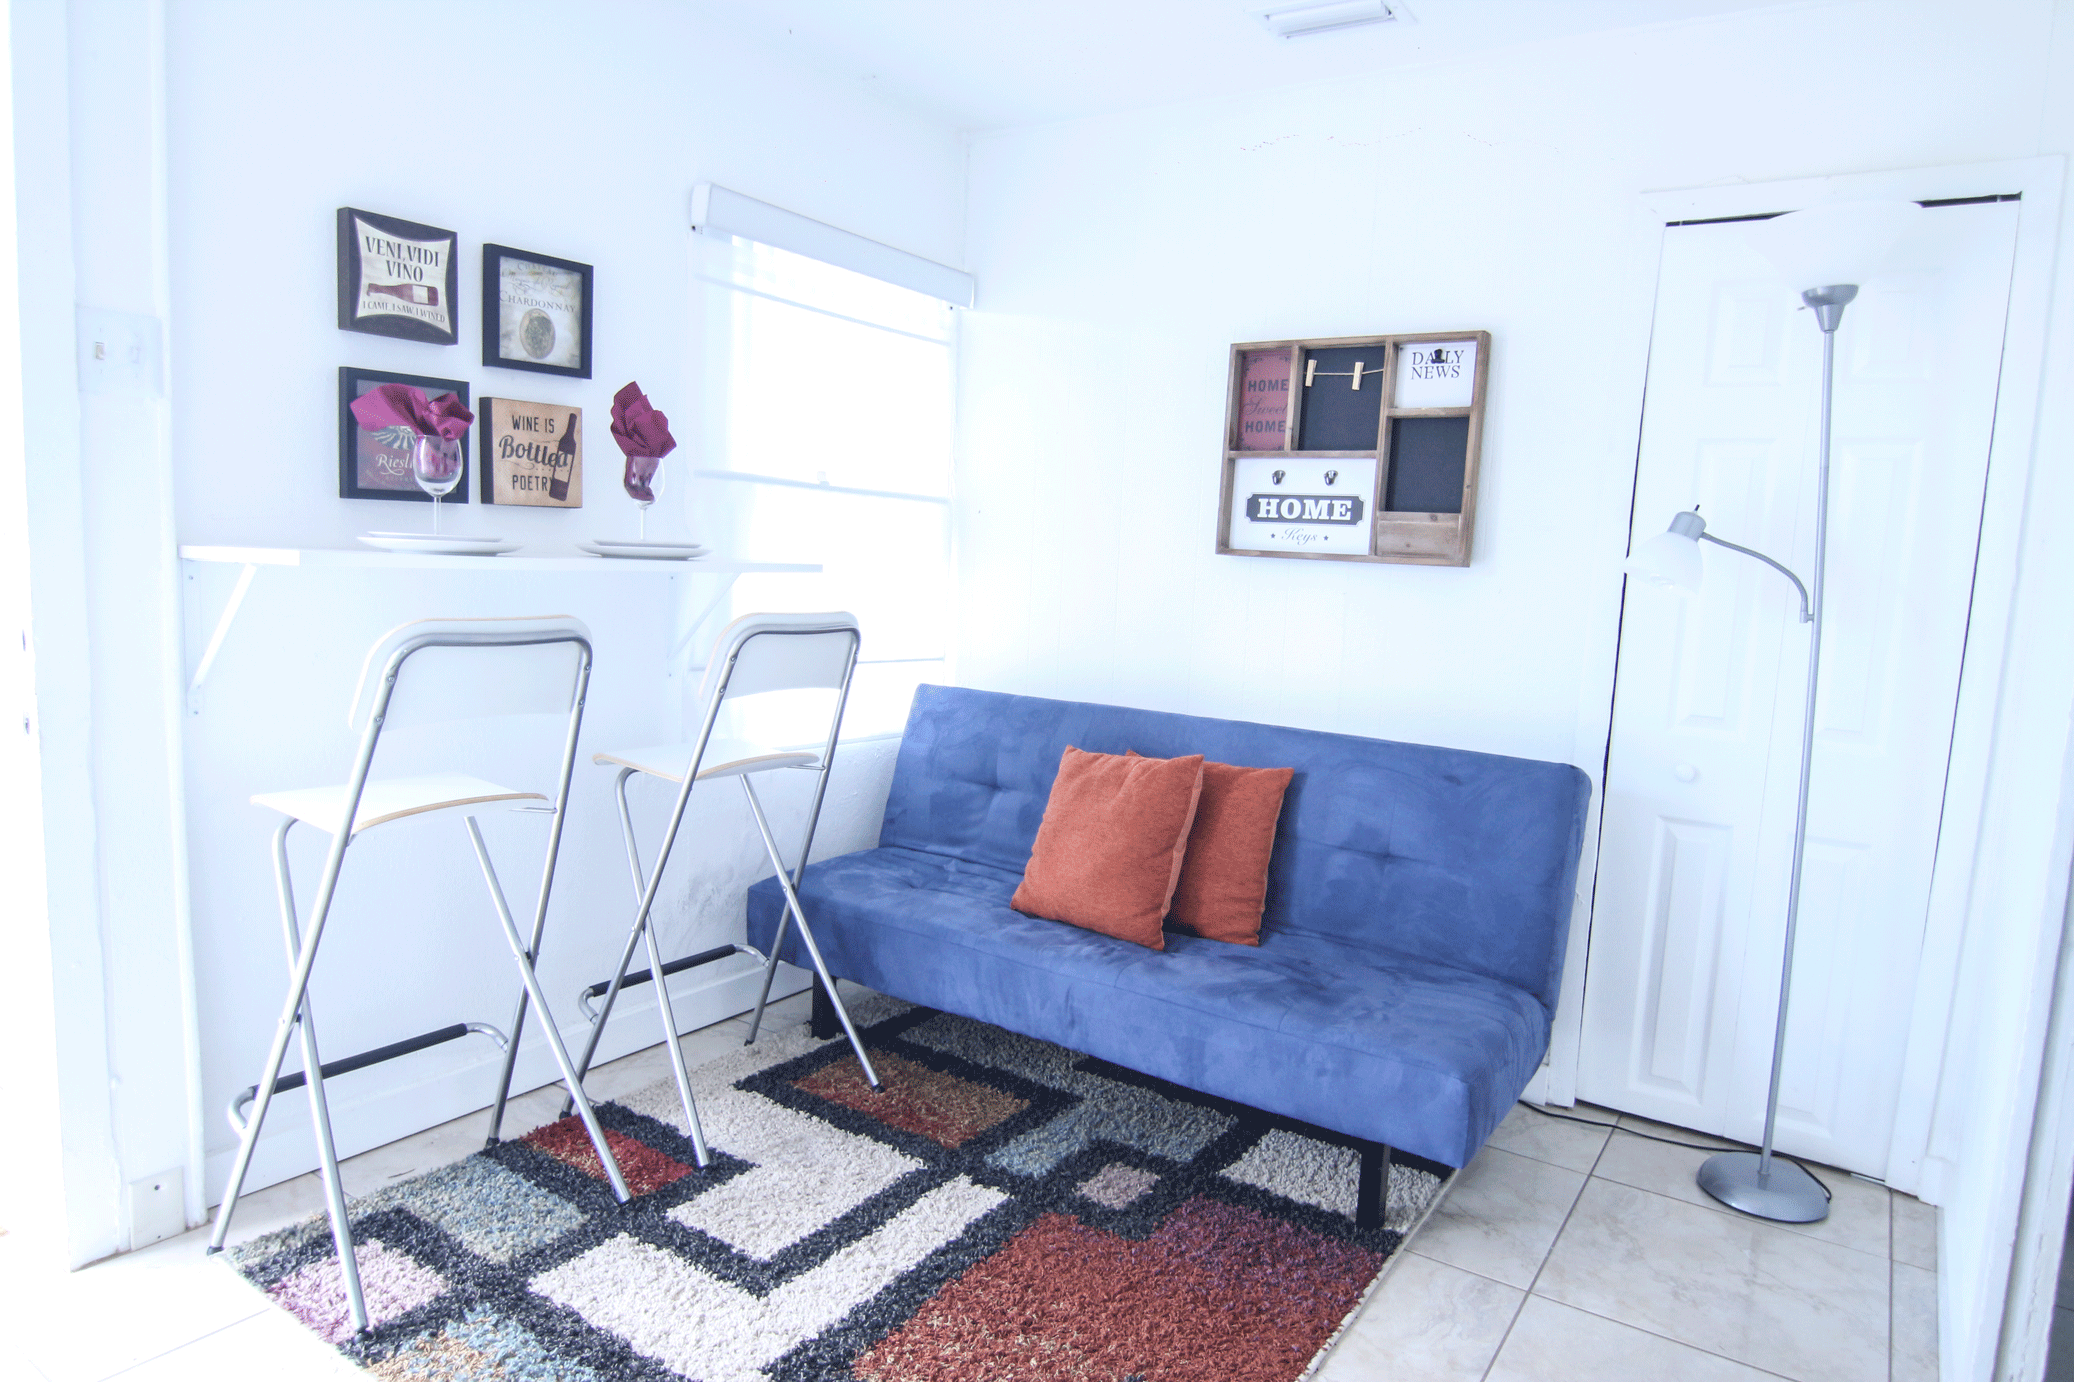 miami international auto show maraya suites inviting 1 br apartment in the historical coral way neighborhood